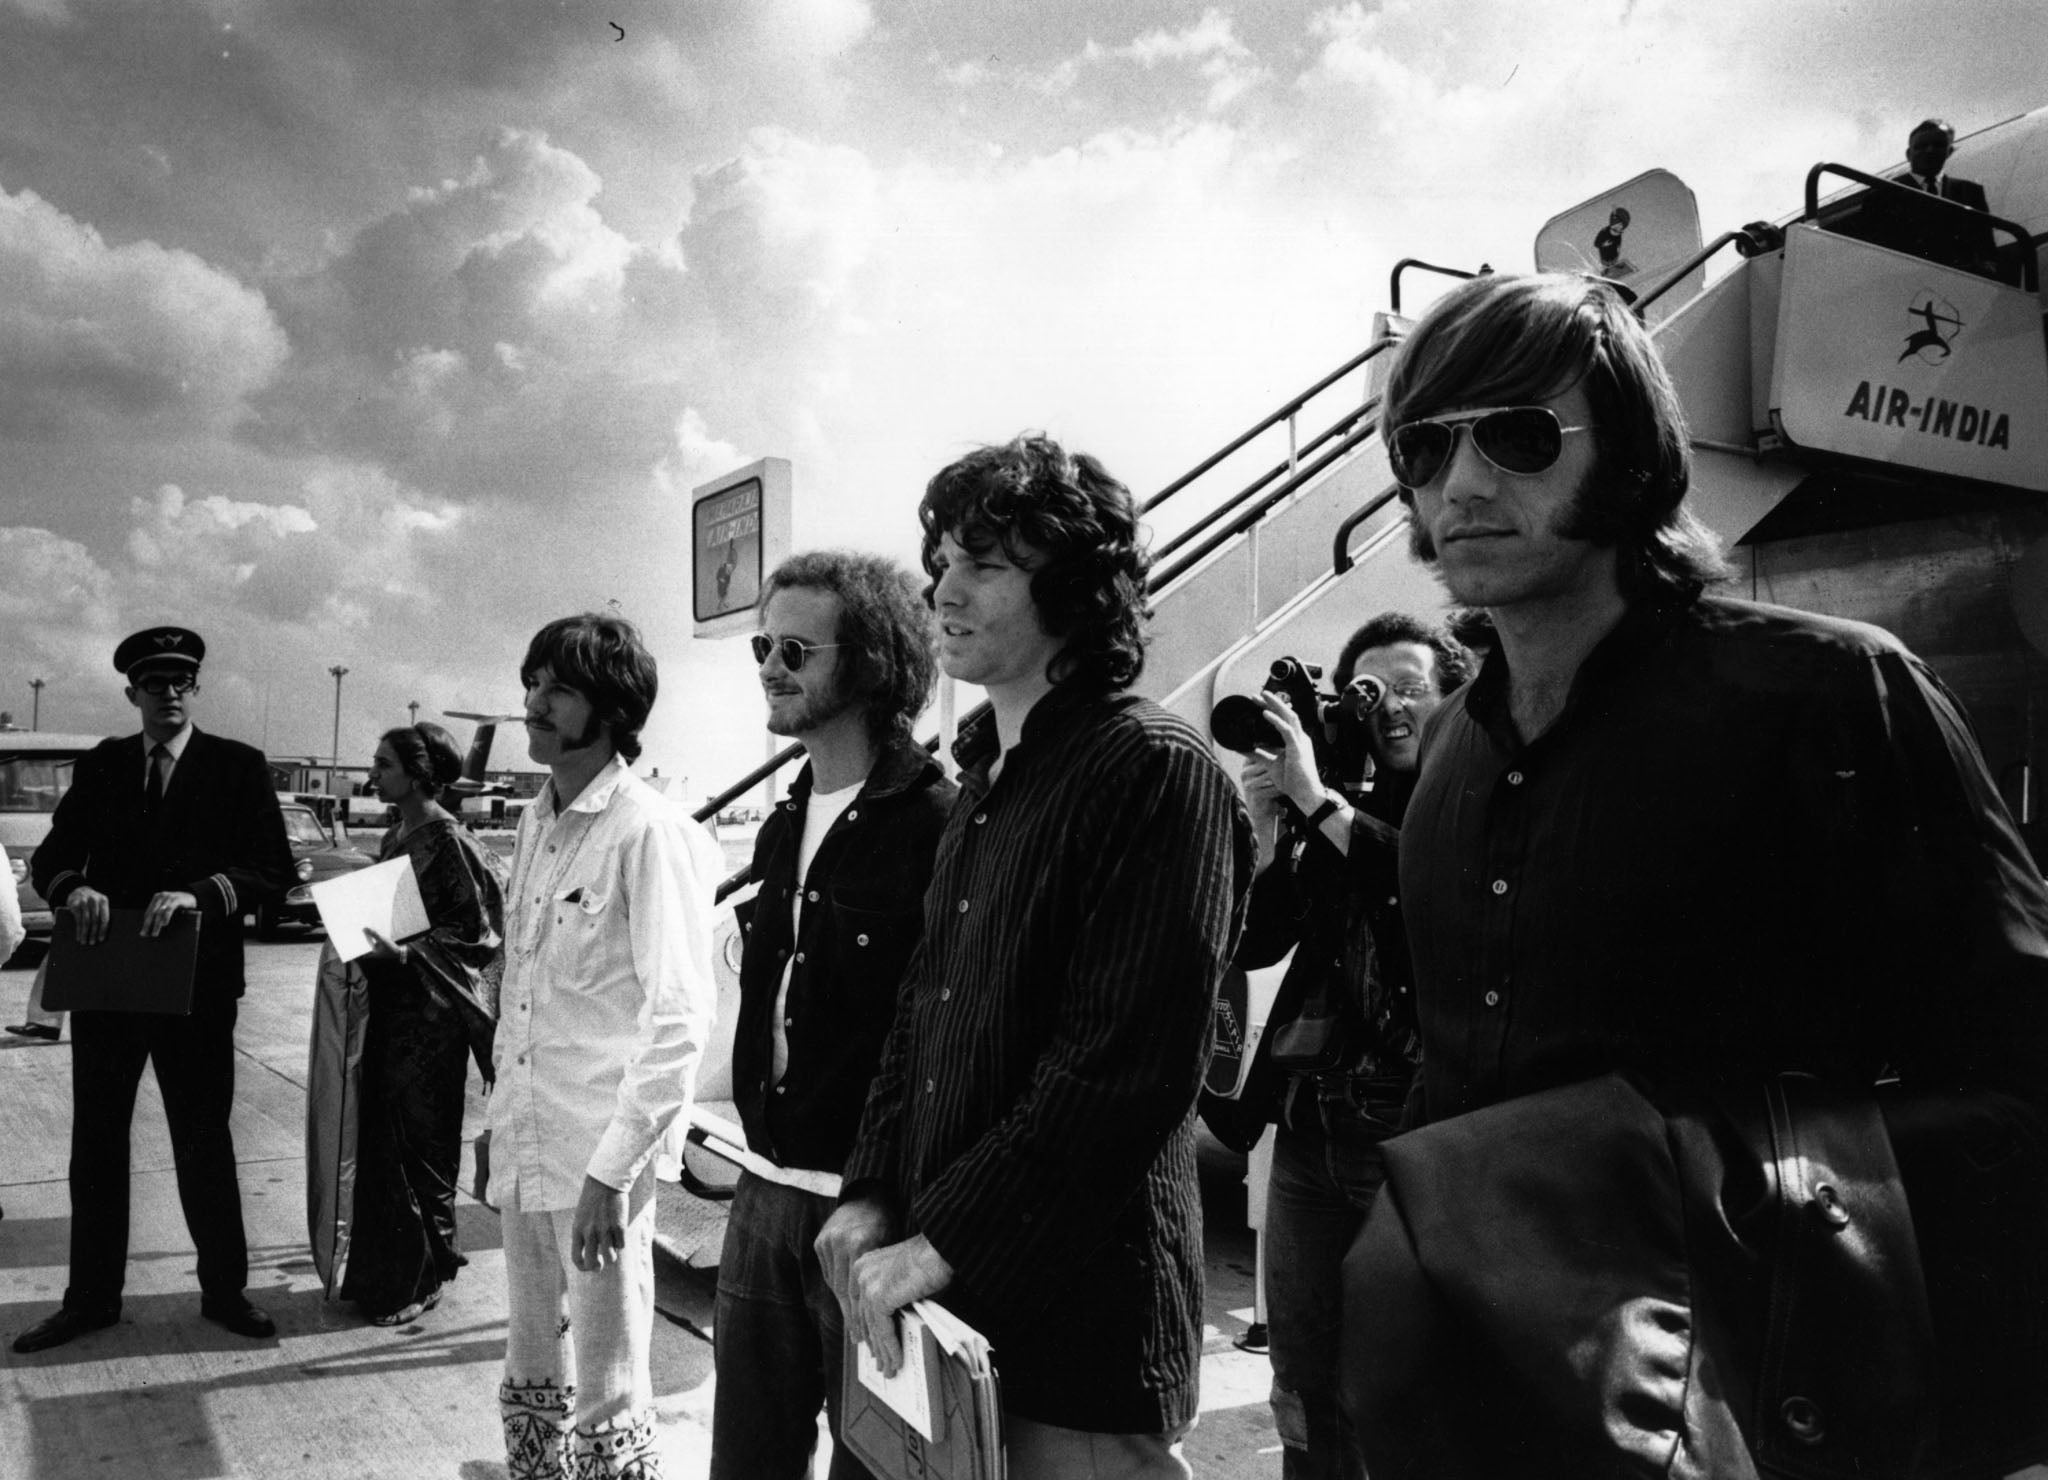 This Is The End Beautiful Friend The Doors Ray Manzareck Dies